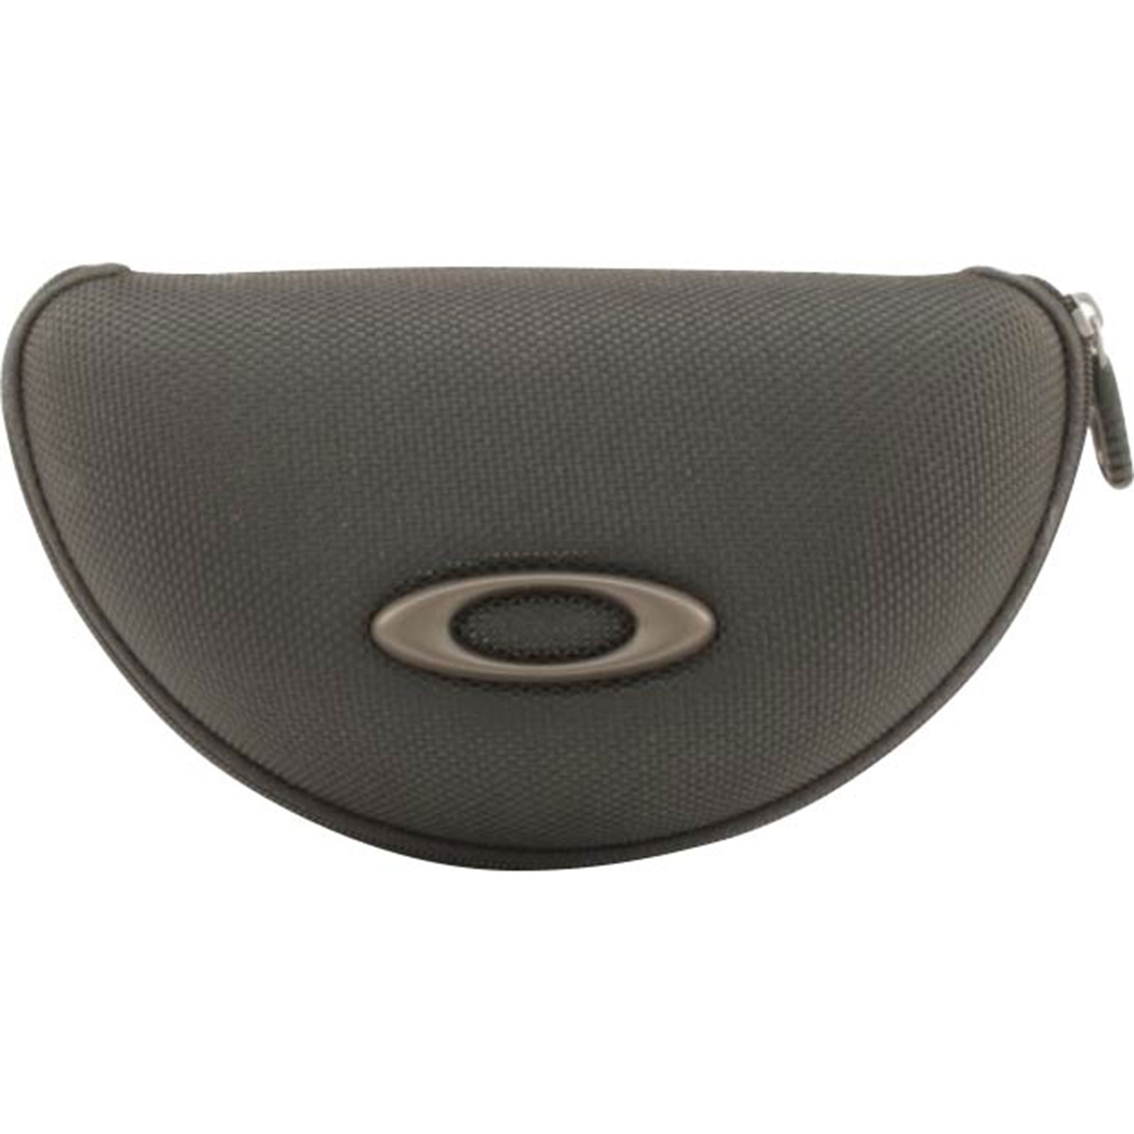 1c9c3bc10678b Oakley Large Soft Vault Case